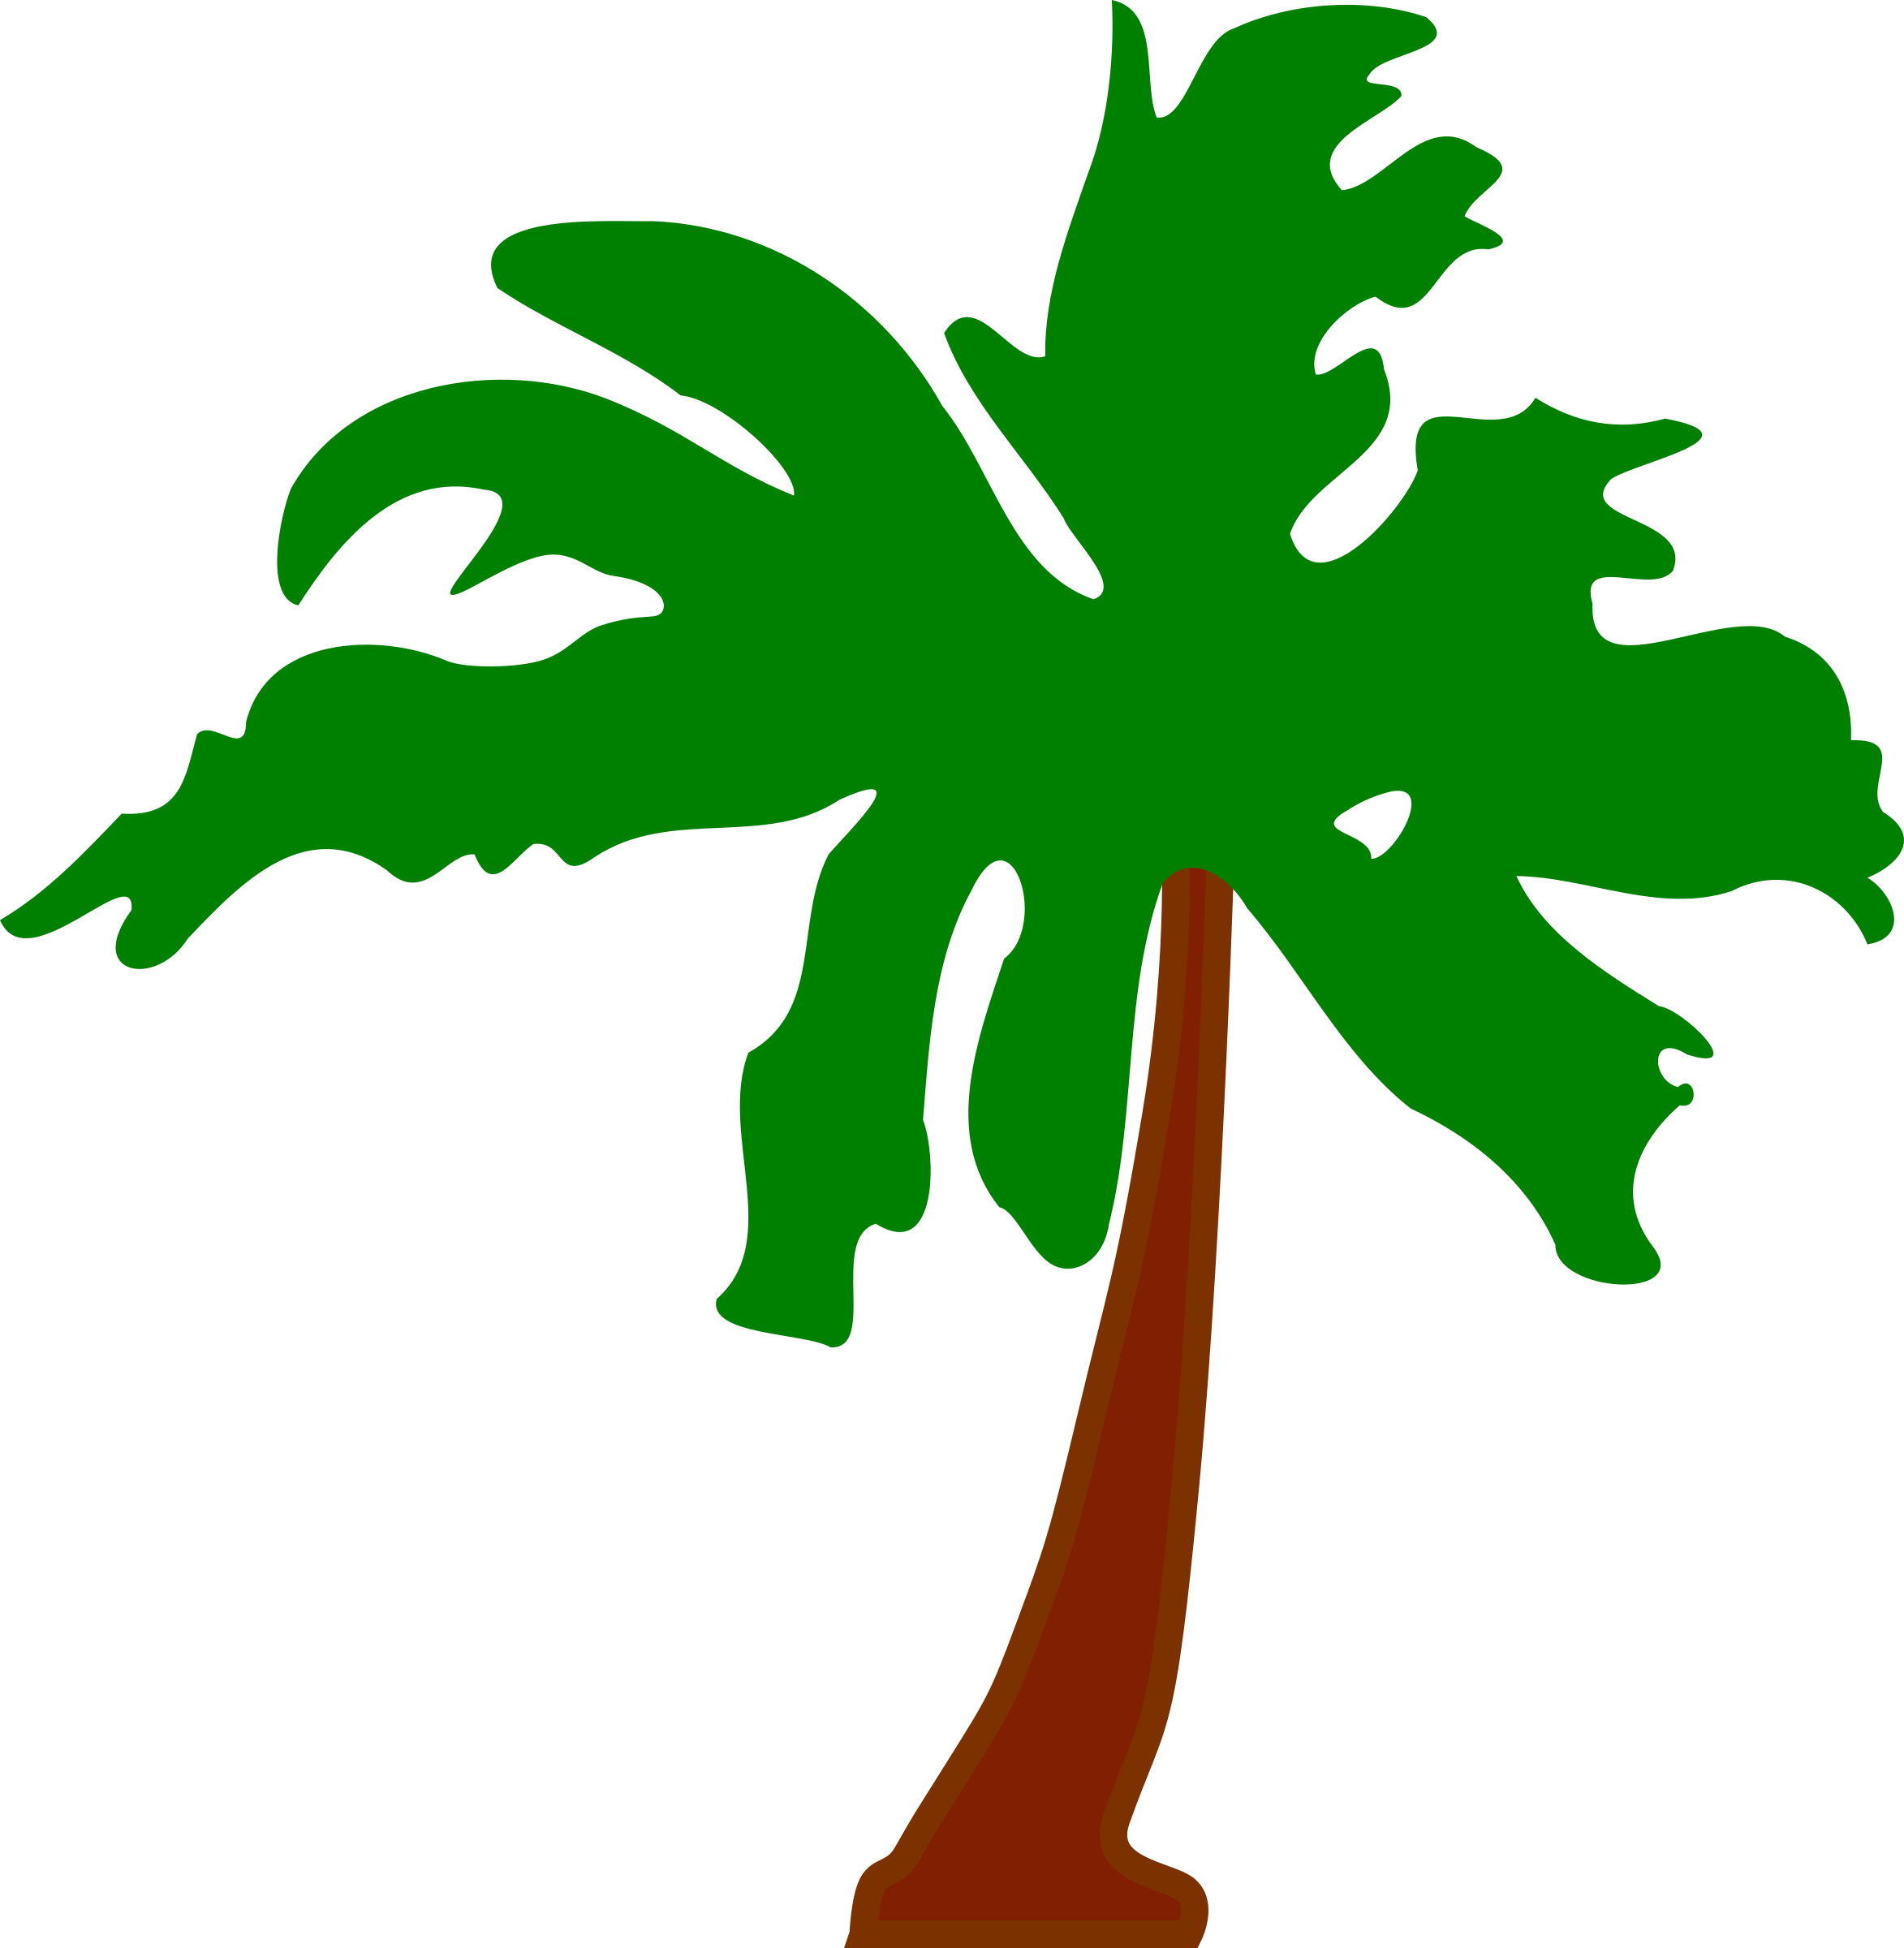 Palm tree 5 by Firkin